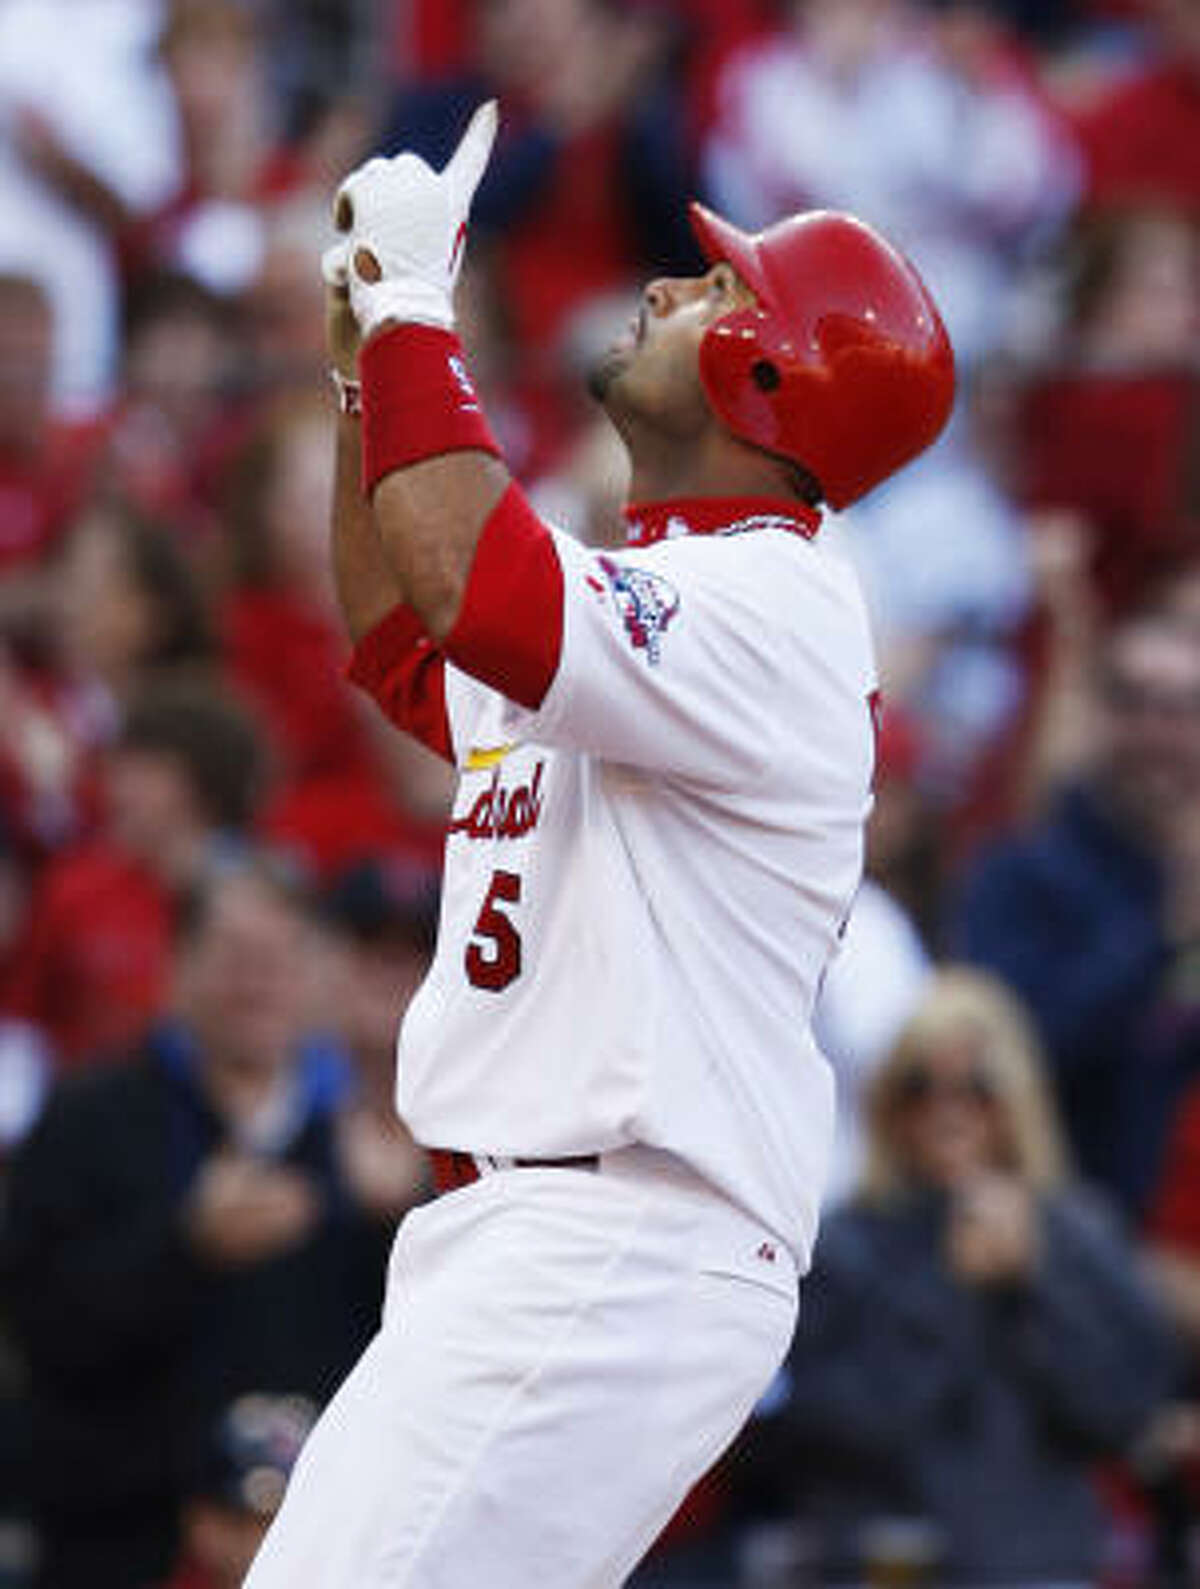 St. Louis Cardinals first baseman Albert Pujols points to the sky as he crosses home plate after hitting a three-run home run in the seventh inning.